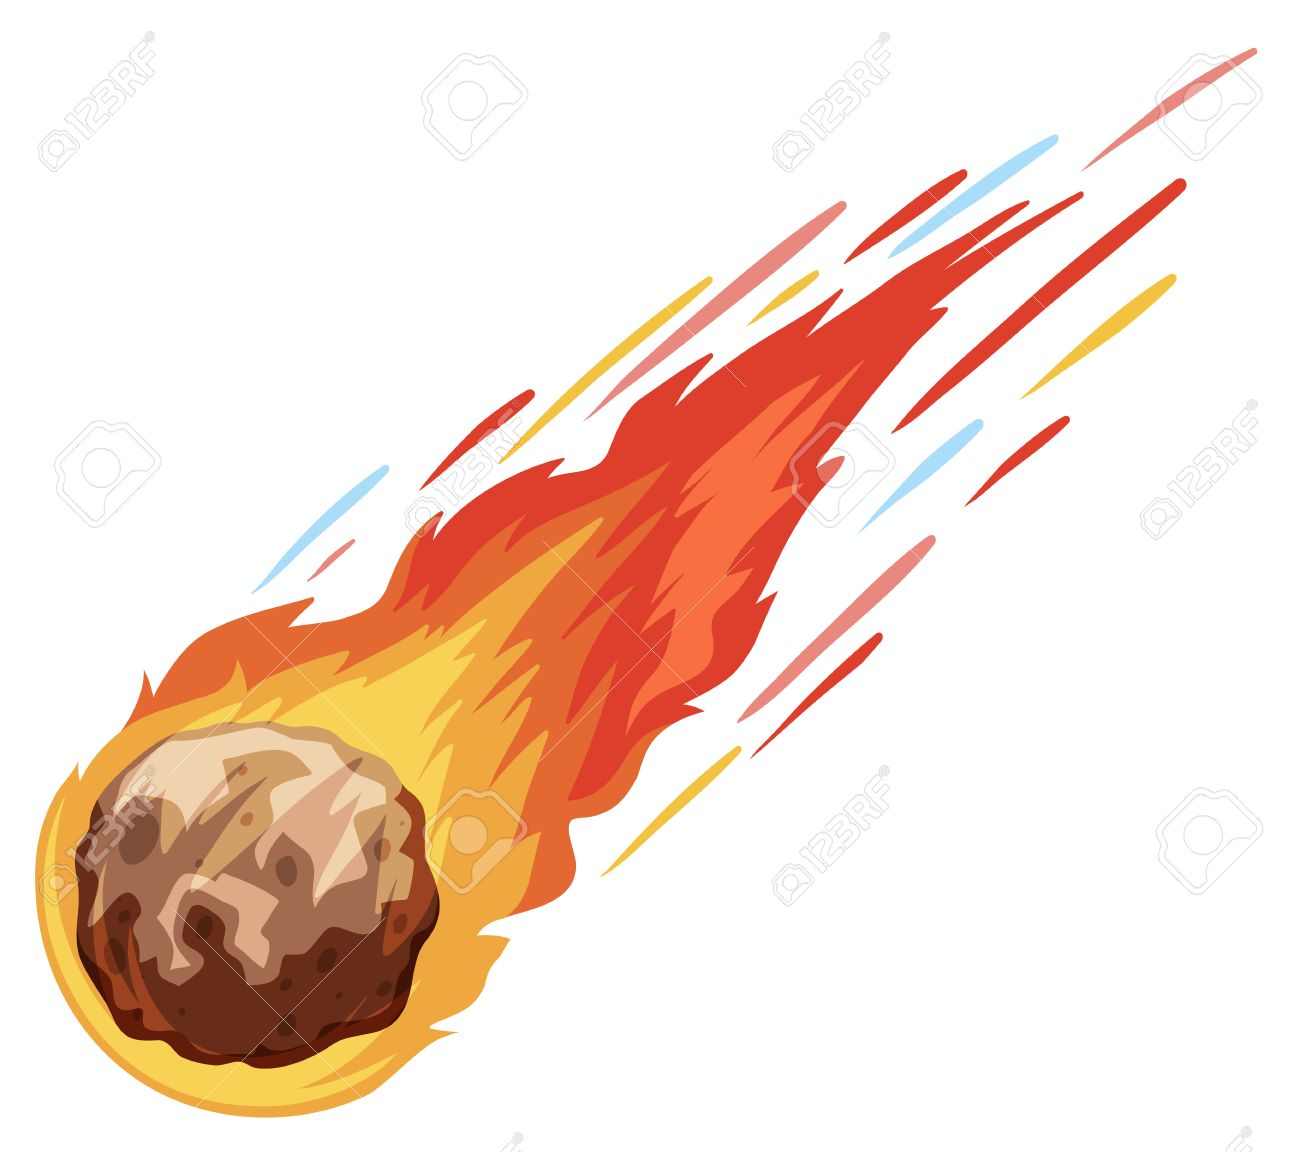 comet falling down fast illustration royalty free cliparts vectors rh 123rf com